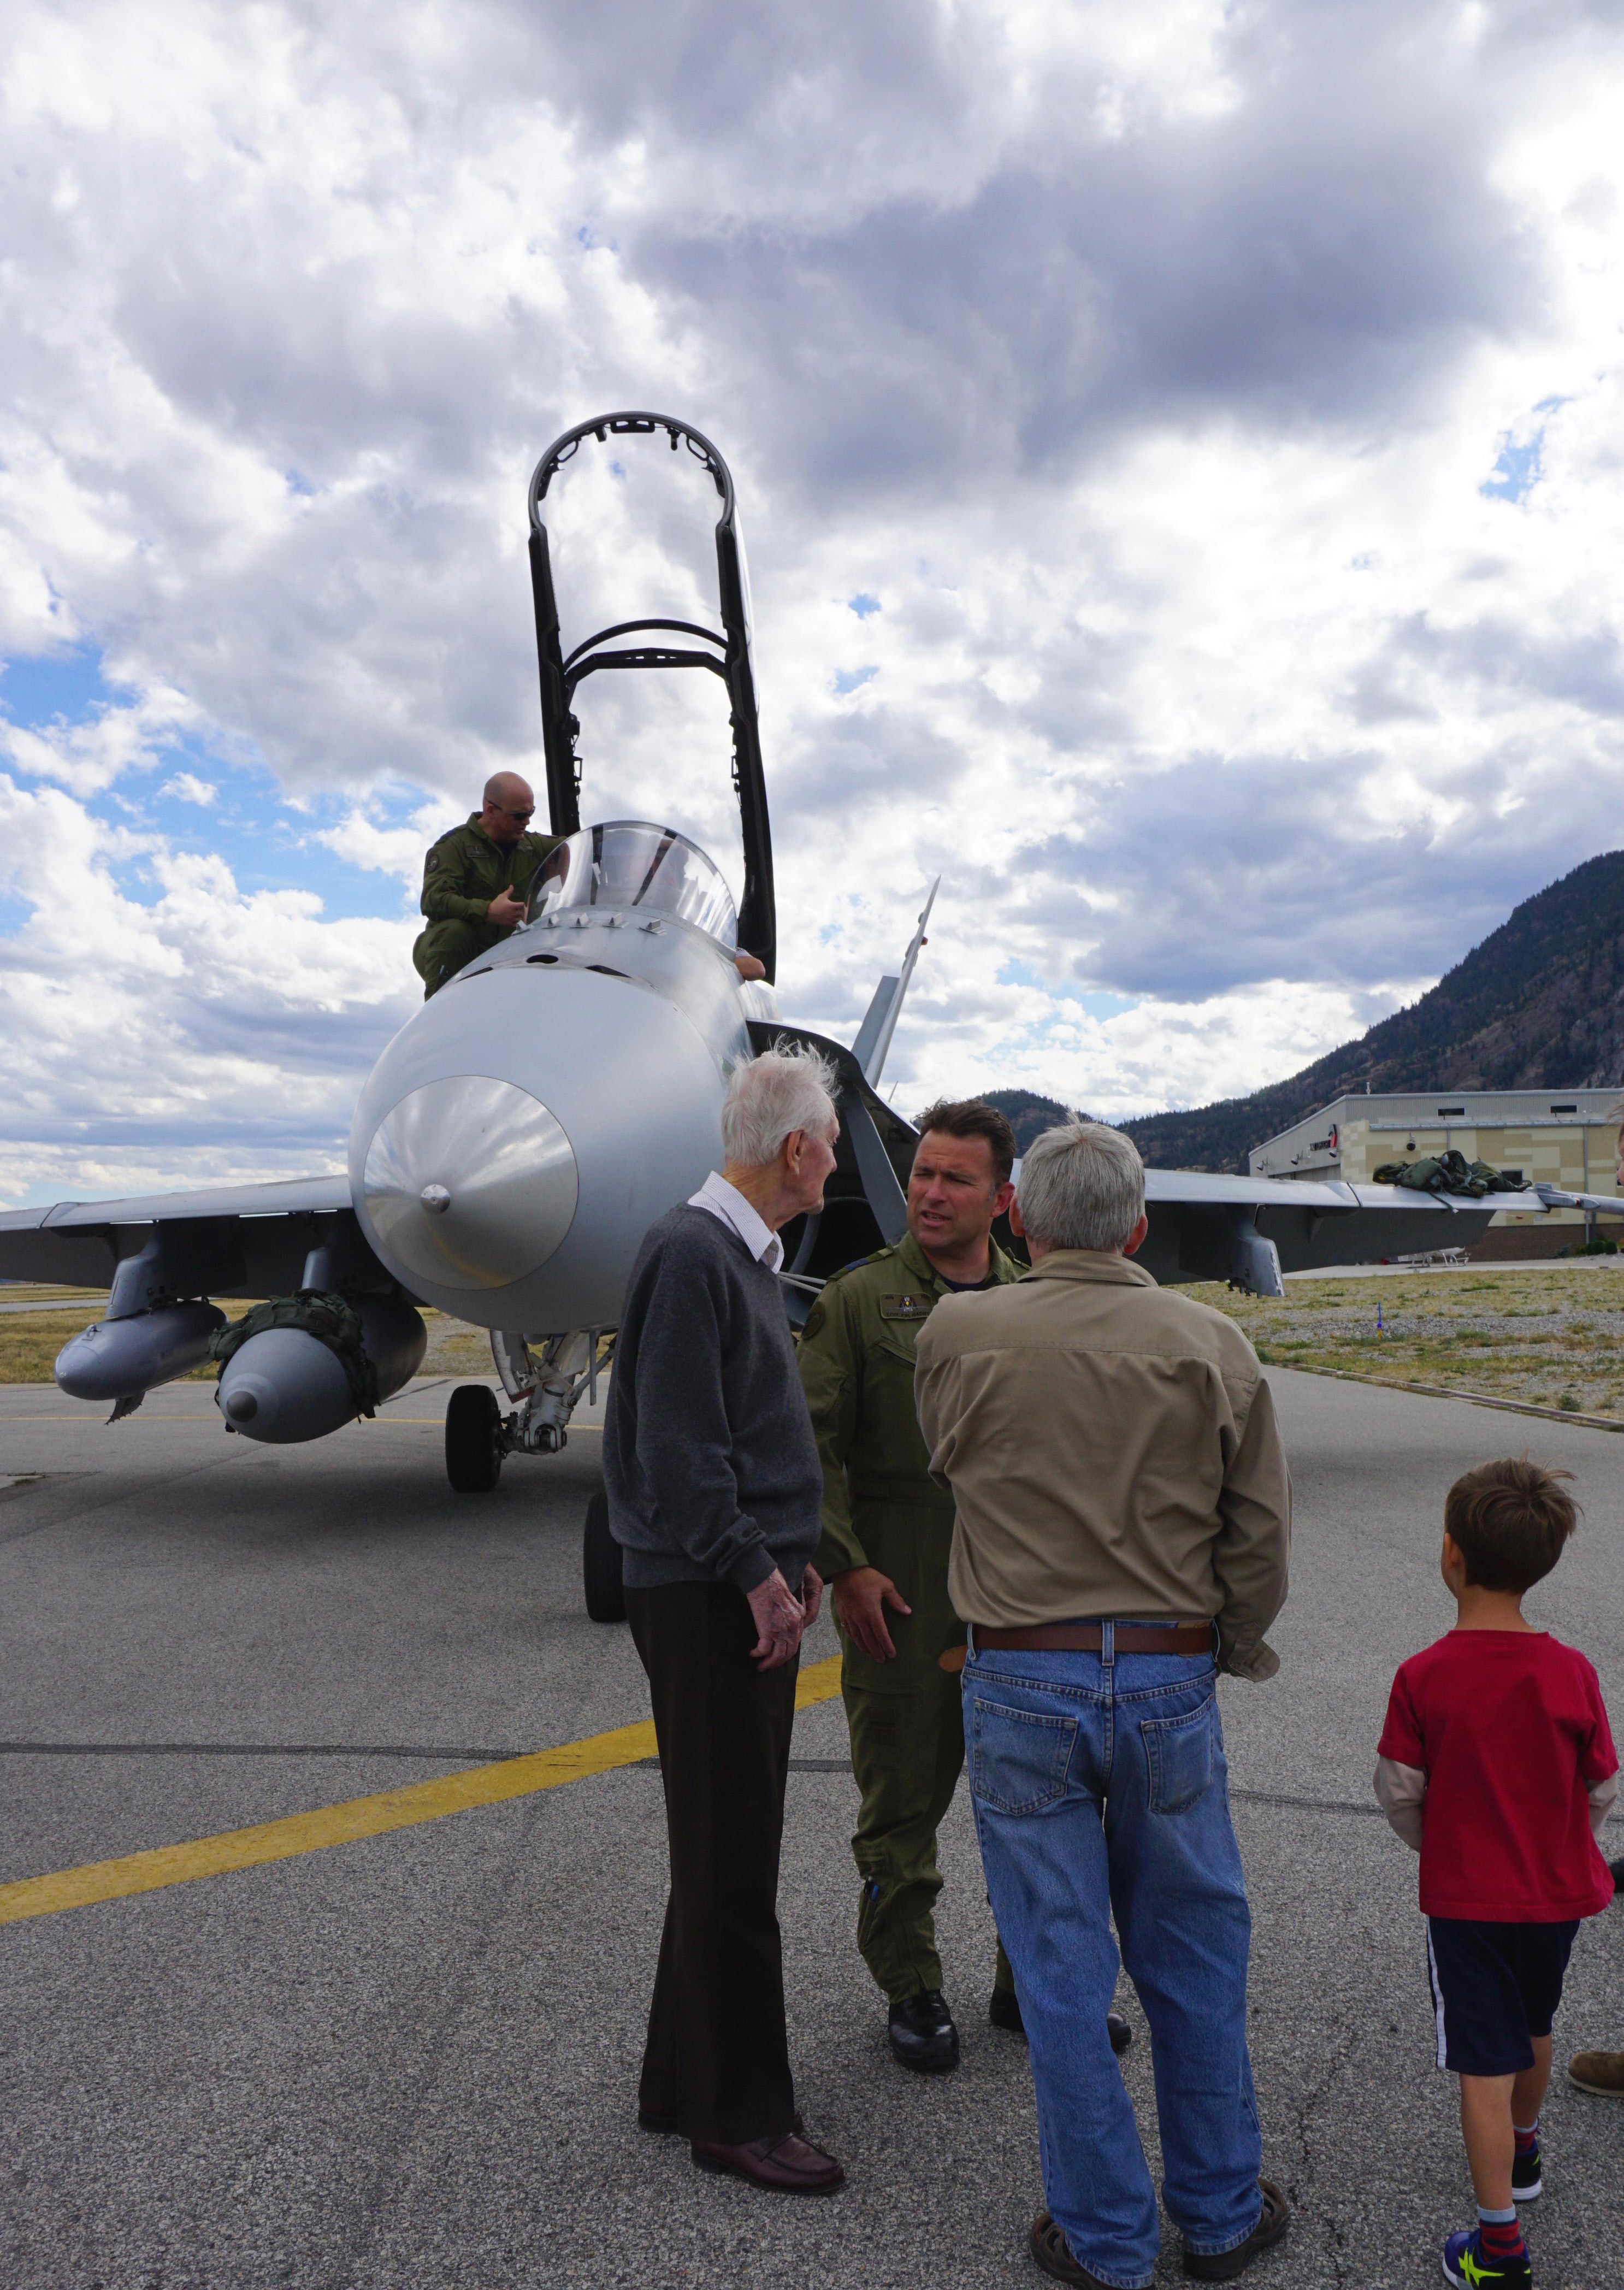 Members of Squadron Leader (retired) Hart and his family visit the two CF-188 Hornets and their crews at the Penticton Regional Airport in British Columbia. The two CF-188s, from 409 Tactical Fighter Squadron at 4 Wing Cold Lake, Alberta, conducted a flyby near Squadron Leader Hart's home on Battle of Britain Sunday – September 18, 2016 – in honour of his 100th birthday and his service during the Battle of Britain. Squadron Leader Hart is believed to be the last surviving Canadian-born Battle of Britain pilot. PHOTO: Submitted